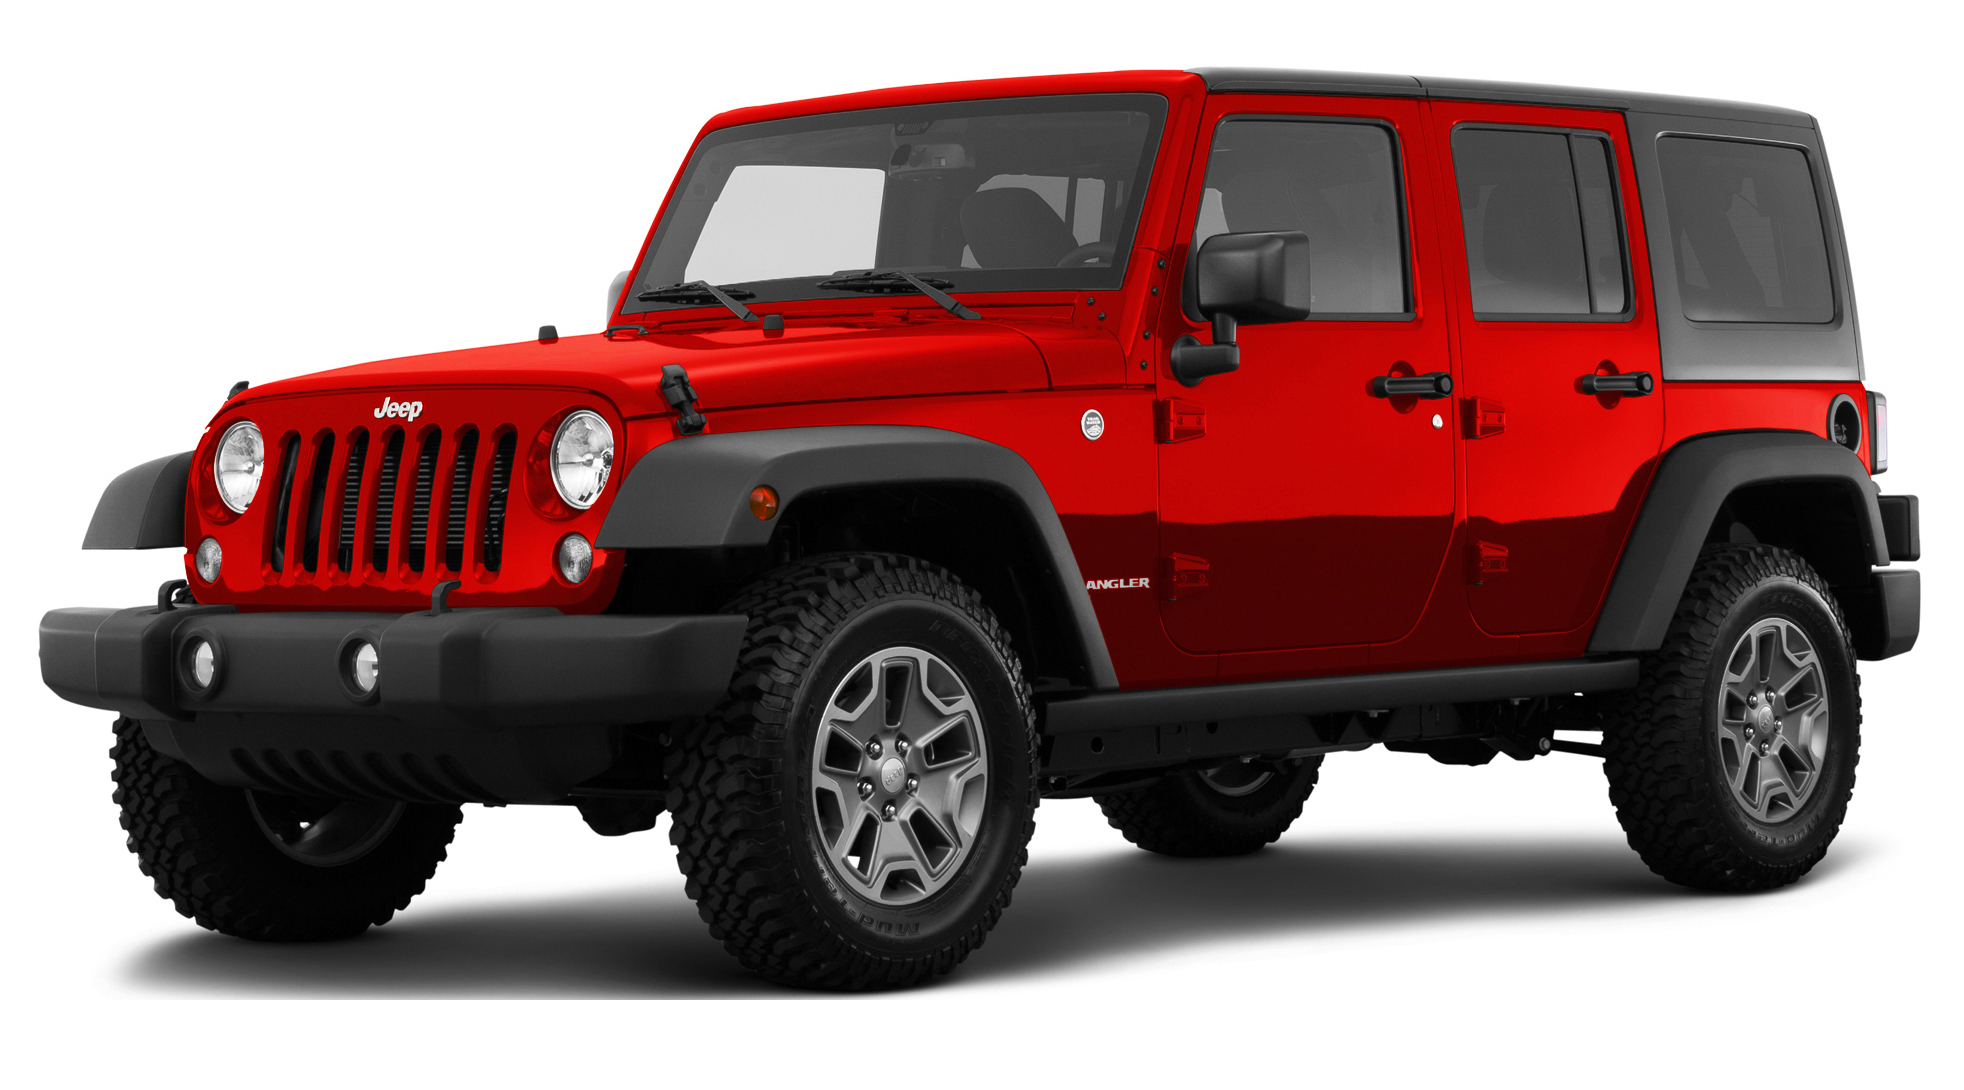 midlifemate index a and airport jeep jeeping jeeps rent car thailand rental